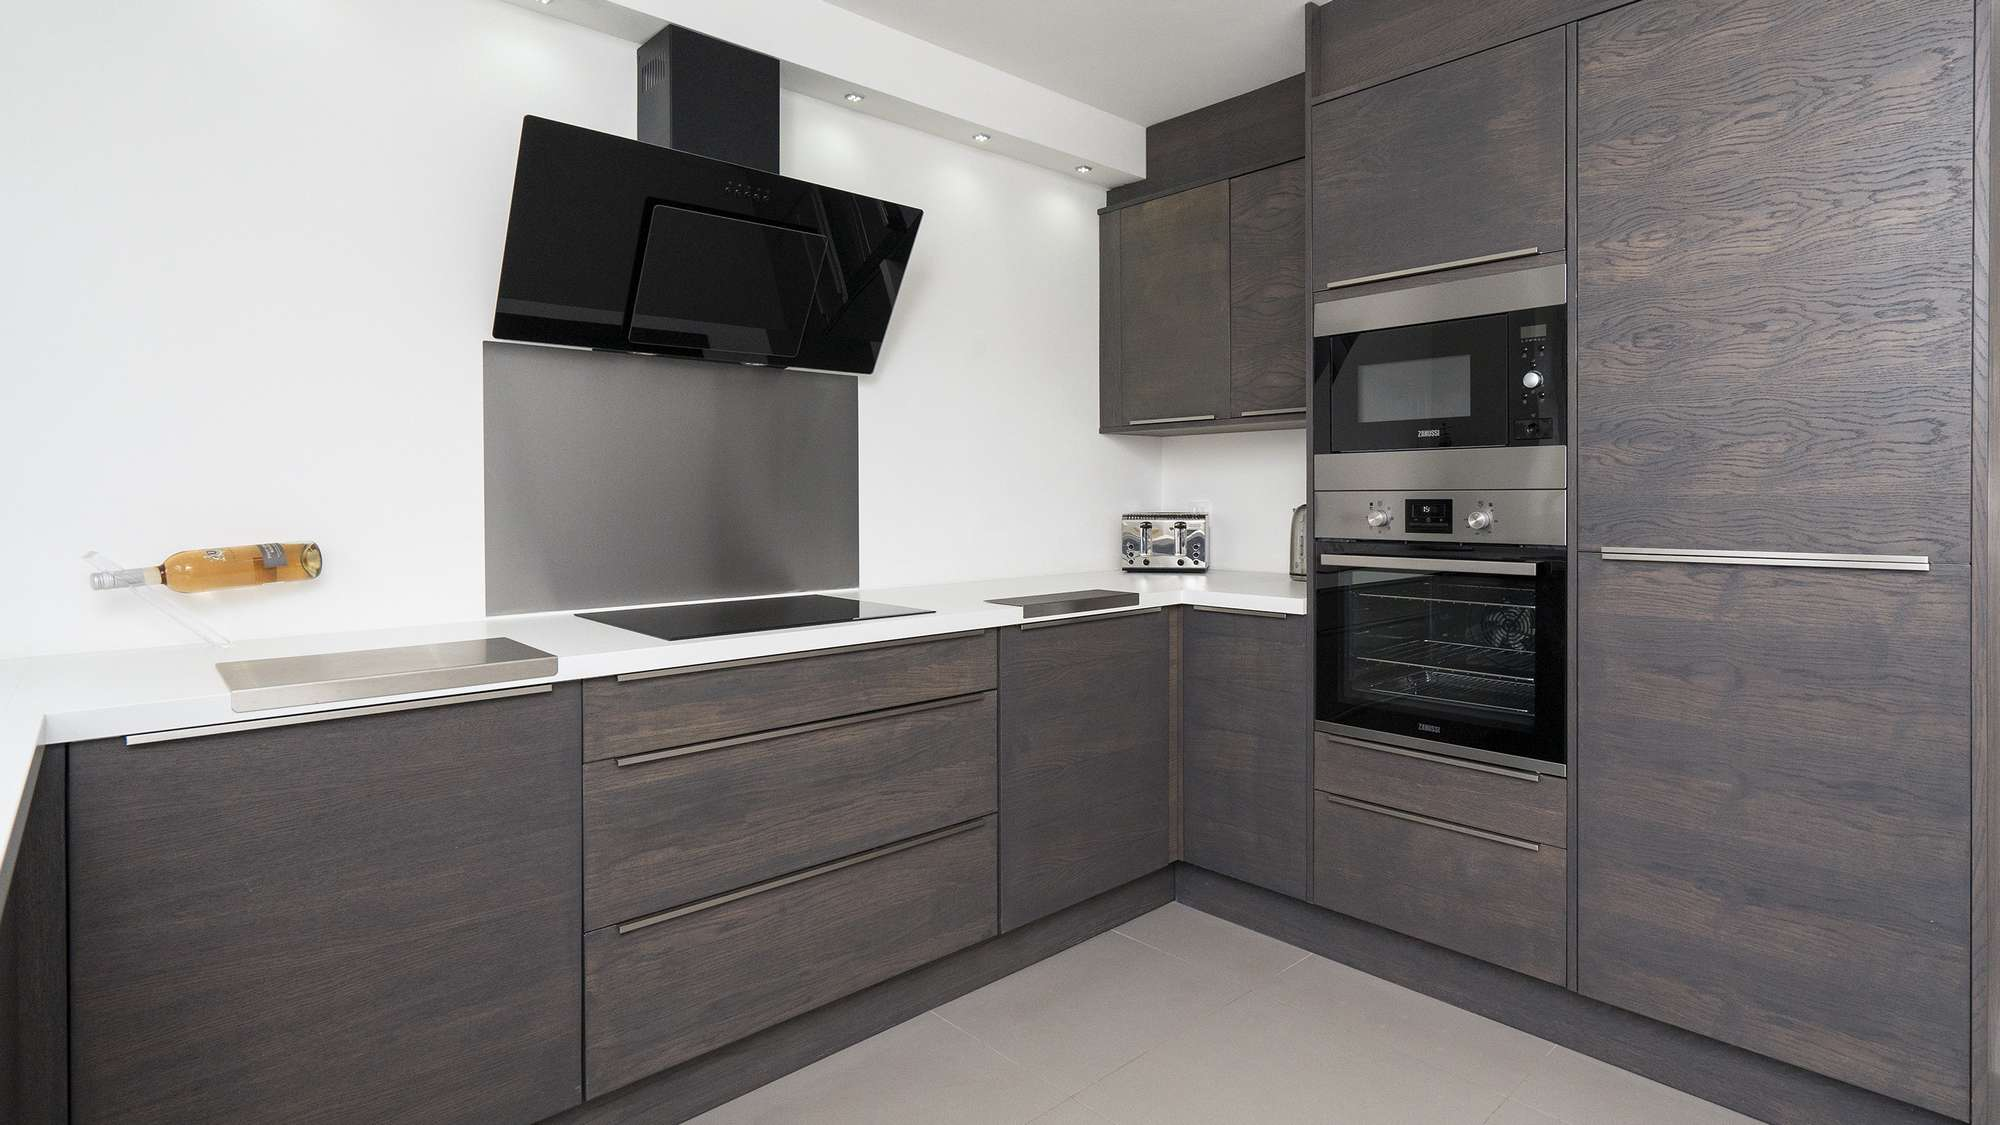 Close up of the cooking area with built in oven, microwave and ceramic hob. Large black extractor above the hob.